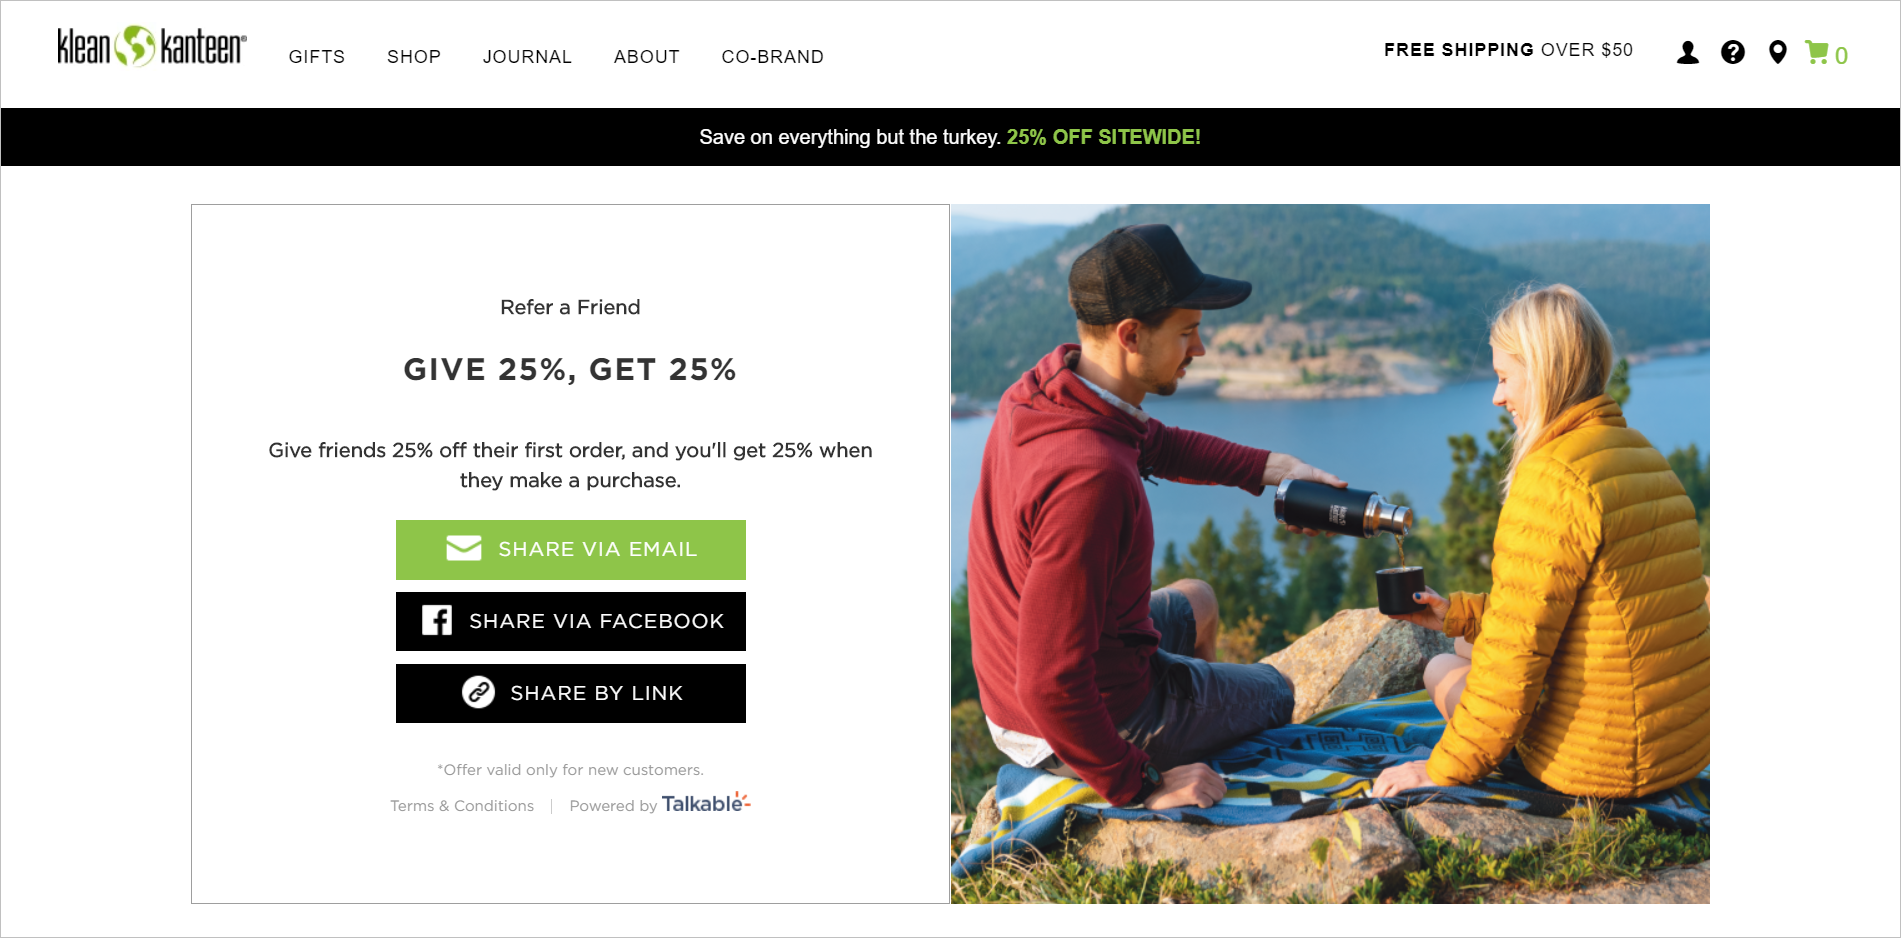 discount pricing strategies- kleankanteen.com referral page tells visitors that they can give their friends 25% off their first order and the visitor gets 25% when a friend makes a purchase